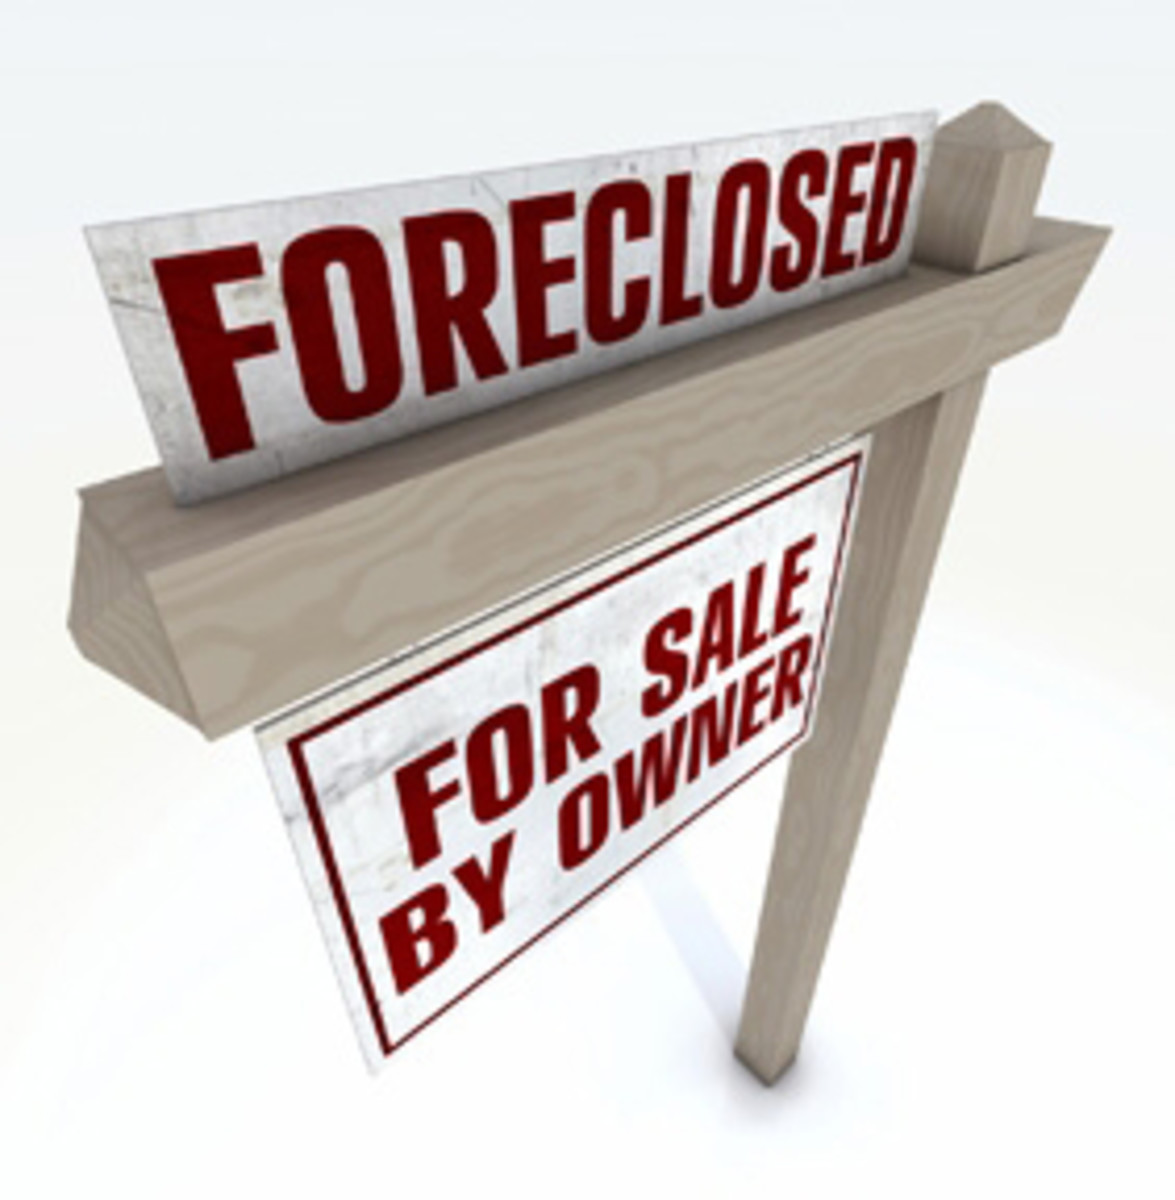 Start a Clean Foreclosure Cleanout Company Information